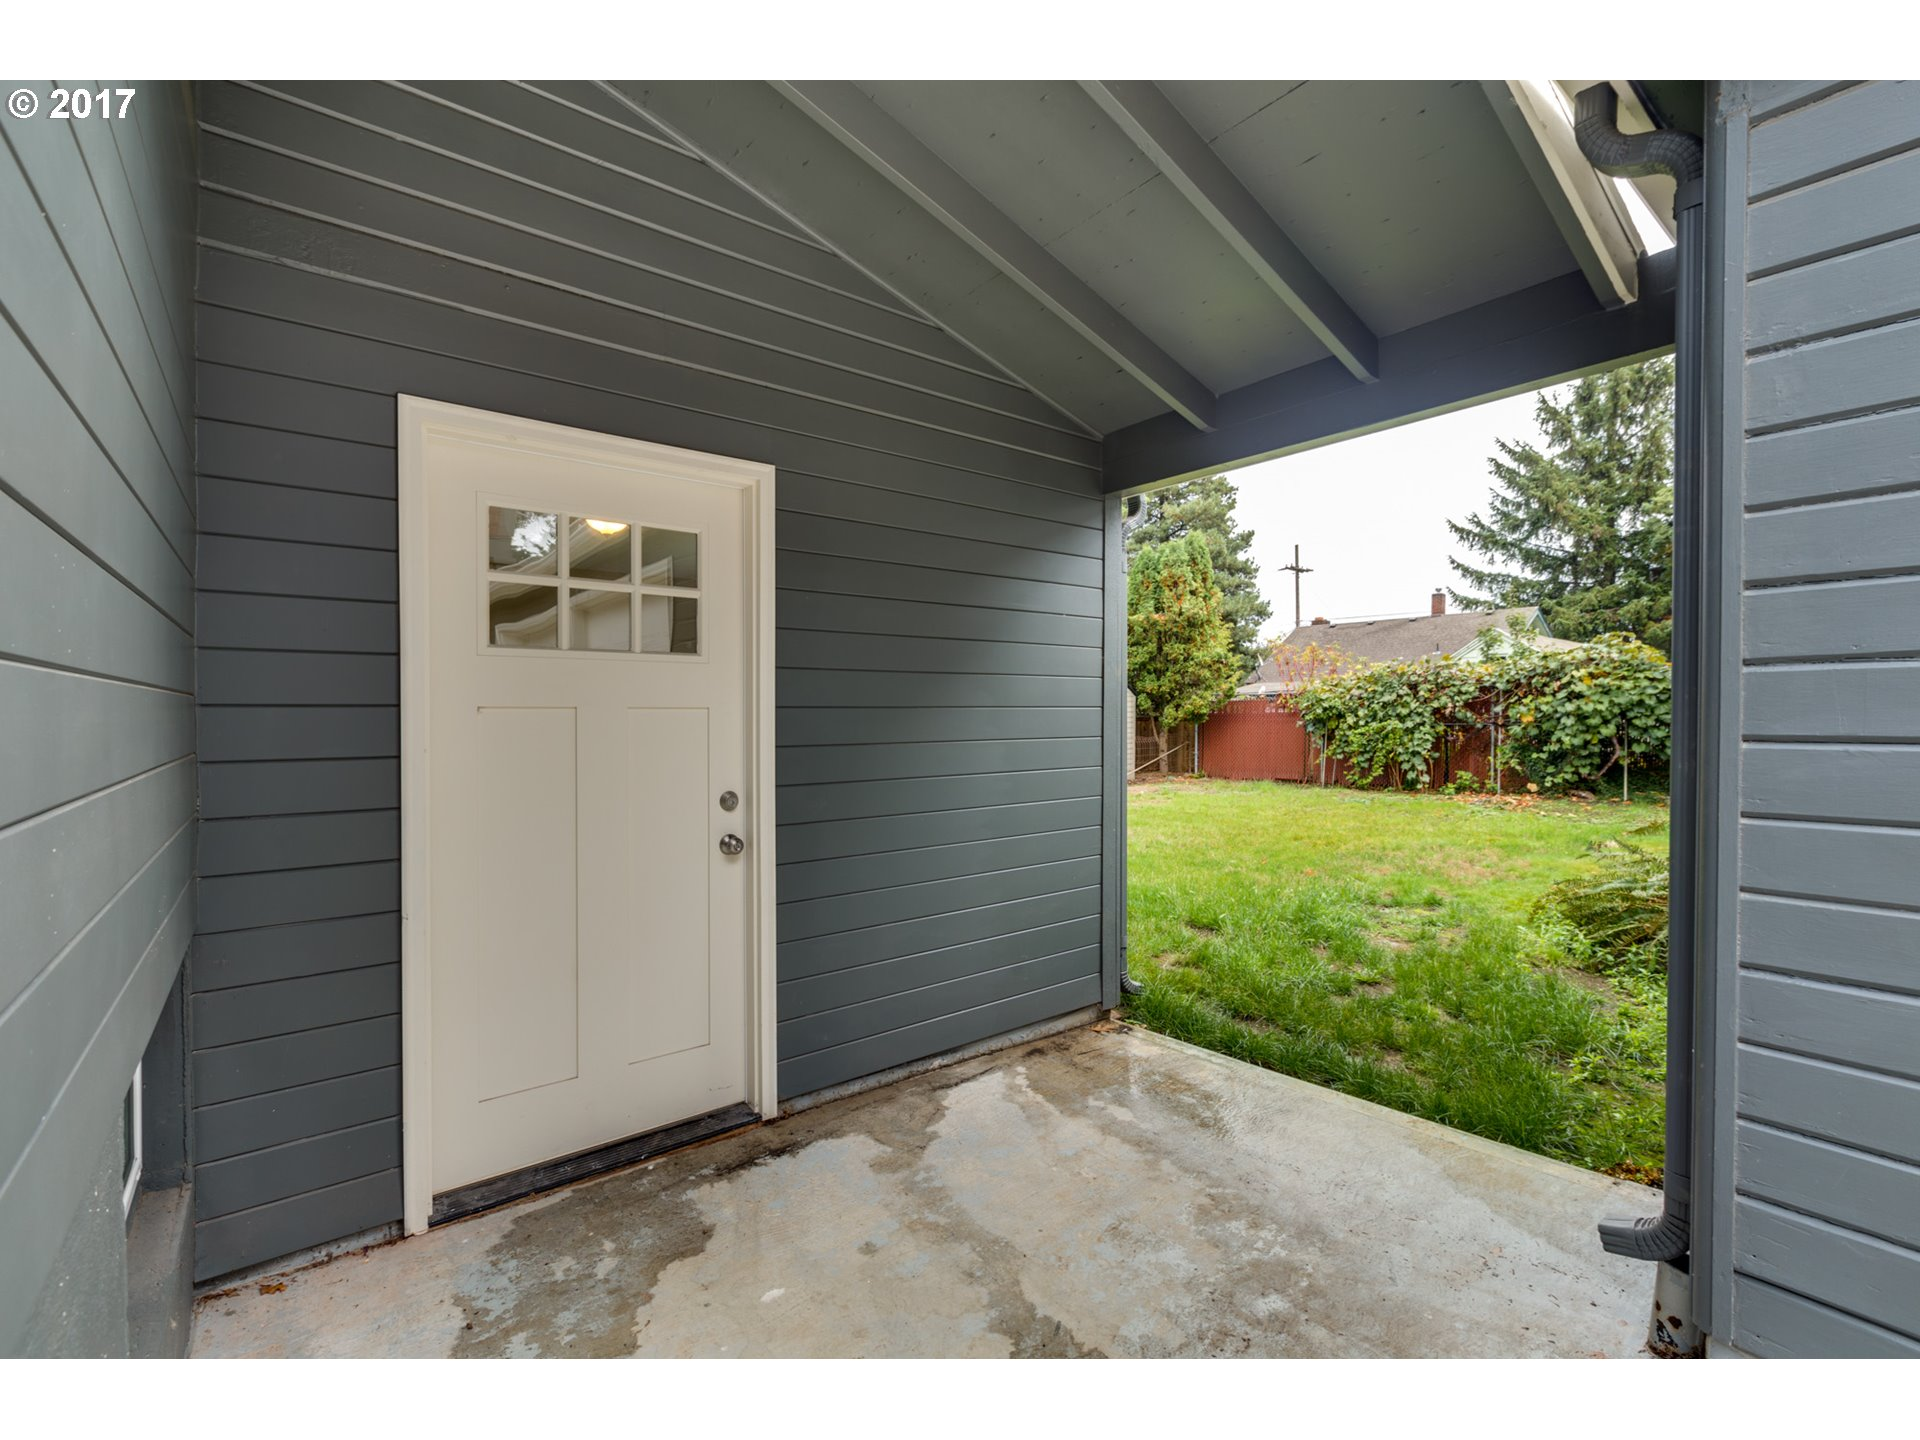 2432 sq. ft 4 bedrooms 2 bathrooms  House ,Portland, OR